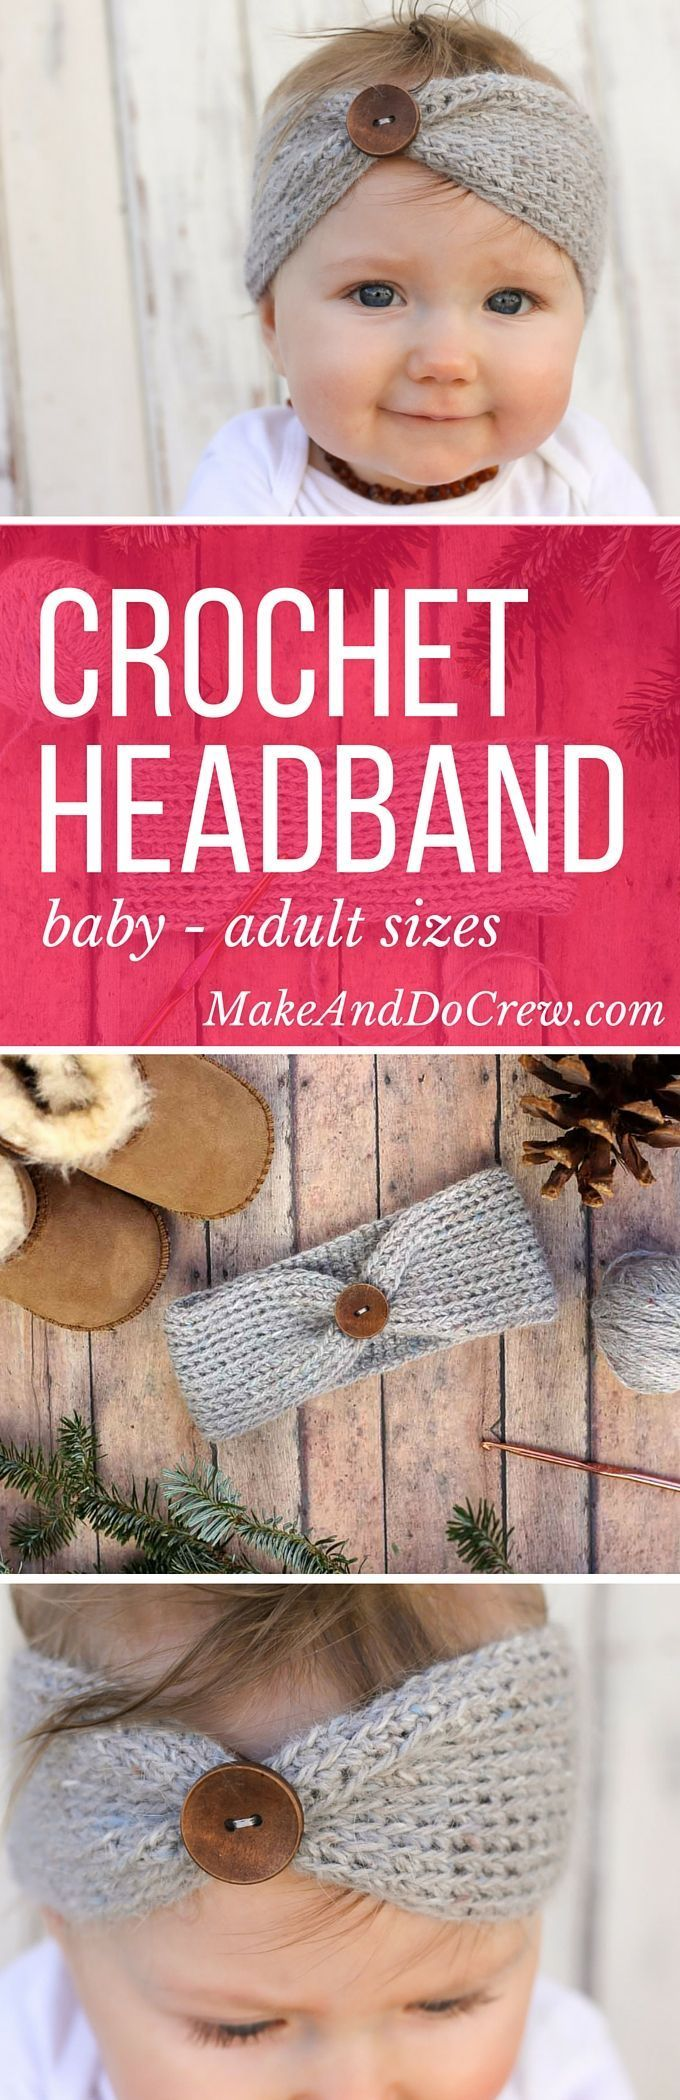 """Free crochet headband pattern! This """"Aspen Socialite"""" headband pattern sizes include, newborn, 3-6 months (baby), 6-12 months, toddler/preschooler, child, and teen/adult. Very quick DIY gift idea for a baby shower, Christmas or winter birthday. Click for"""